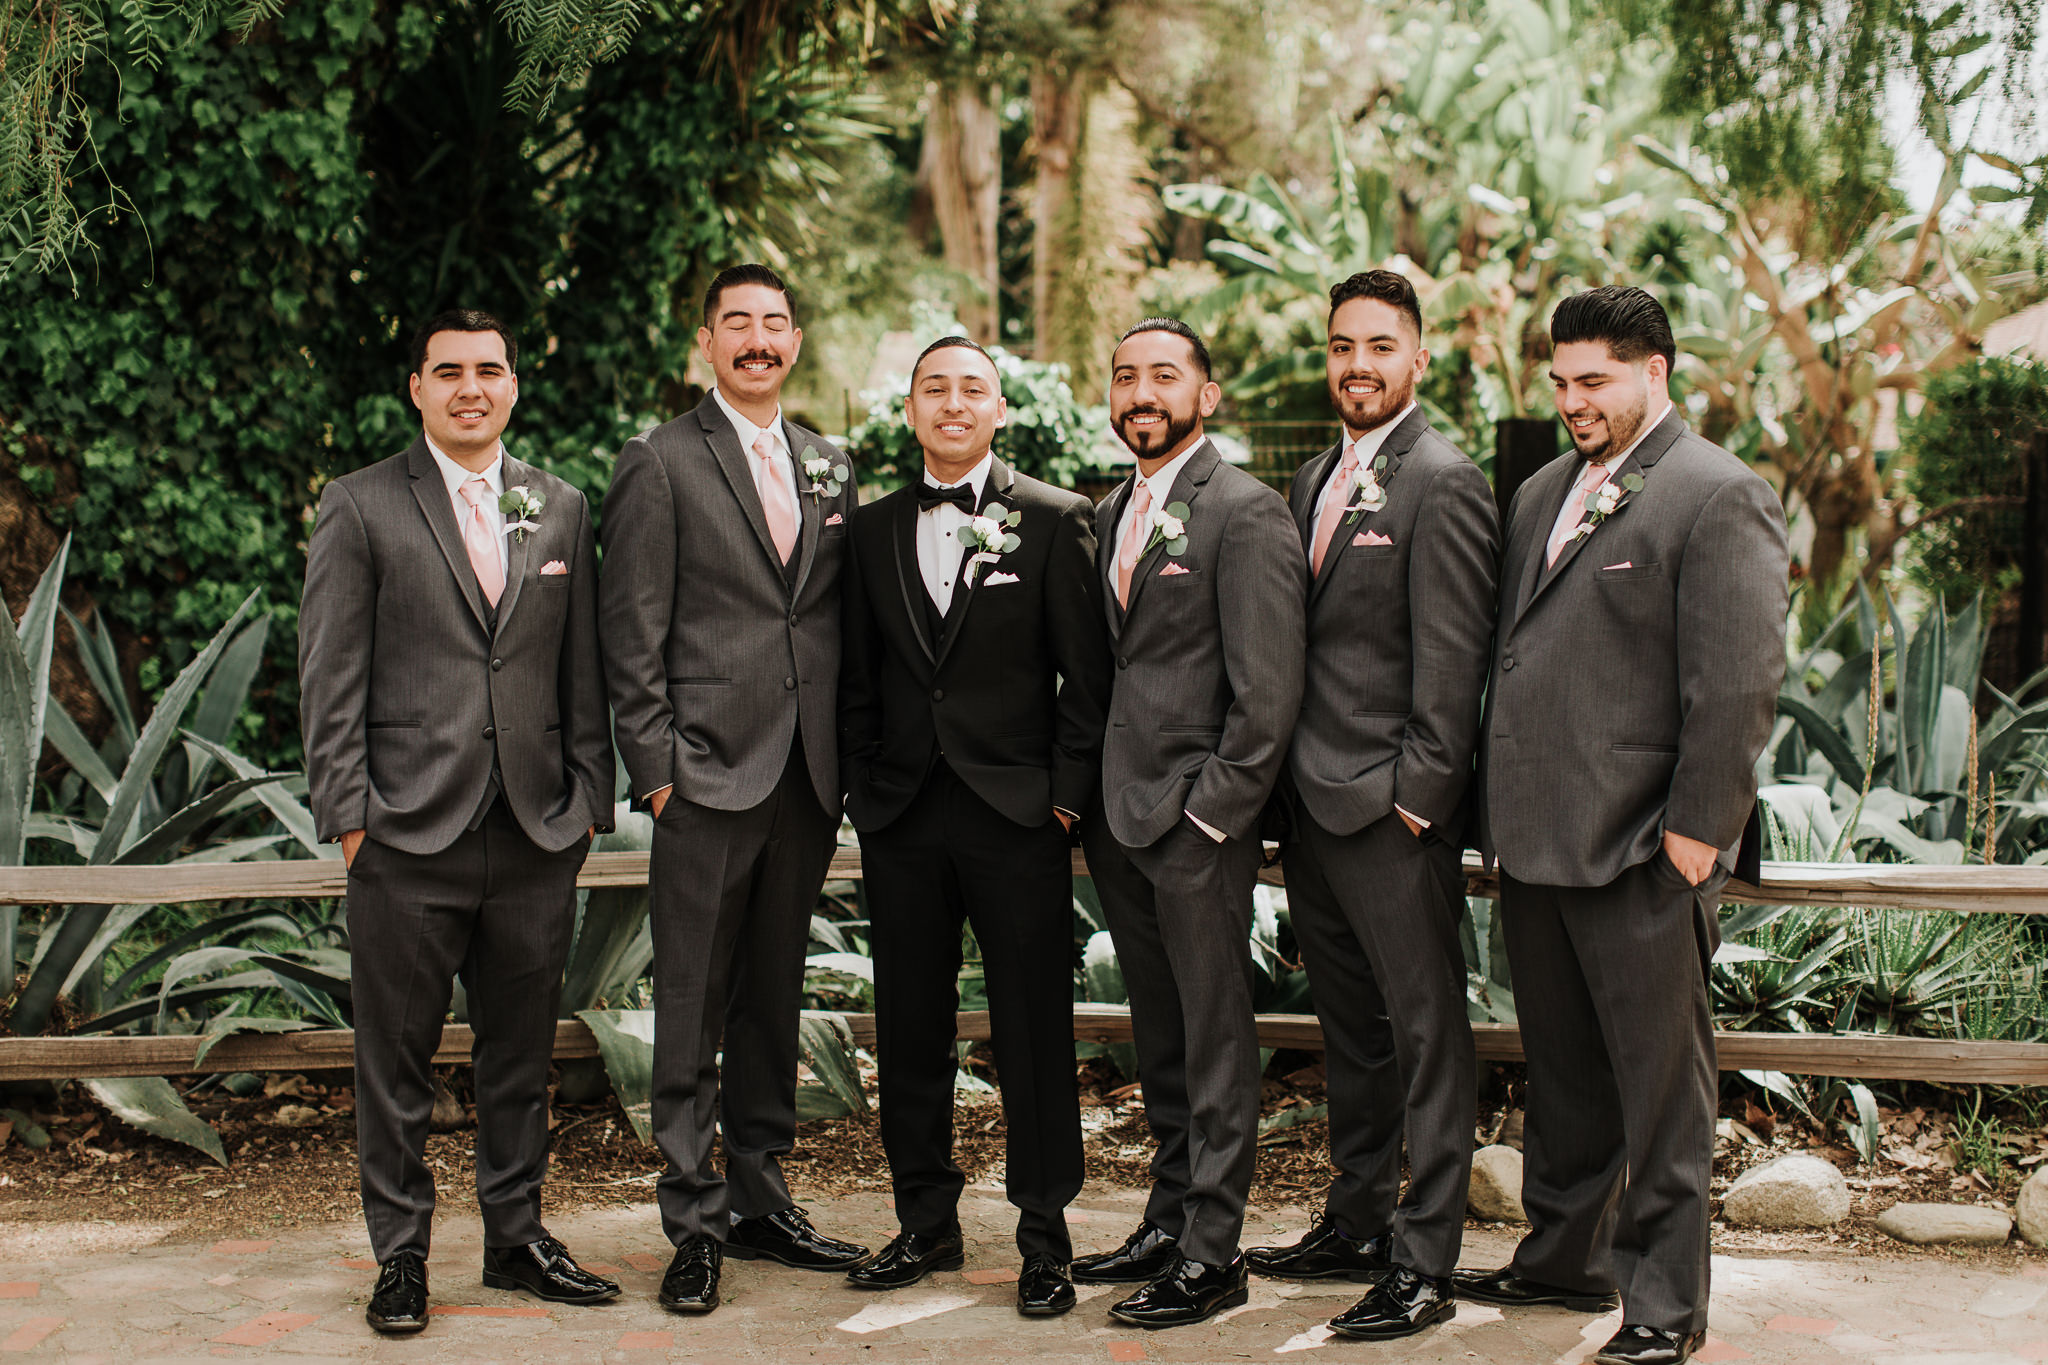 2019-04-05_Brittany_and_Nick_-_Married_-_San_Juan_Capistrano-40.jpg